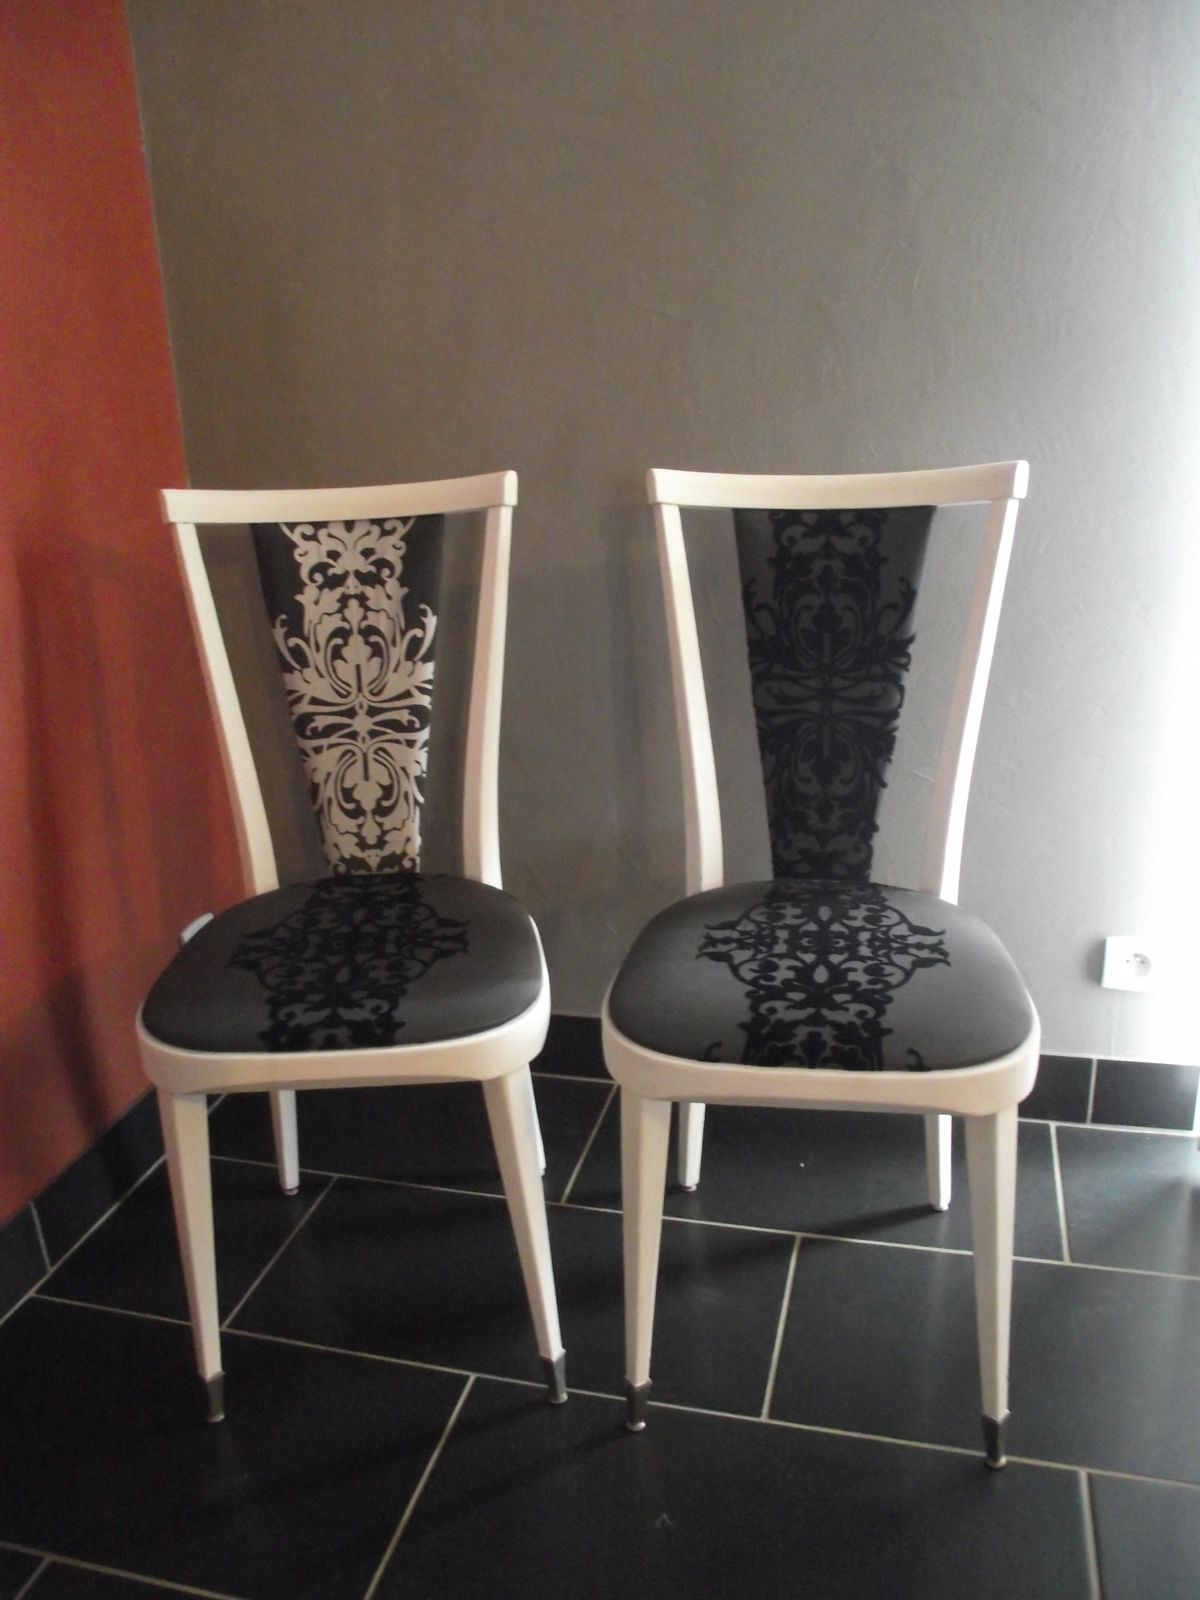 Deux chaise customiser - Customiser des chaises ...